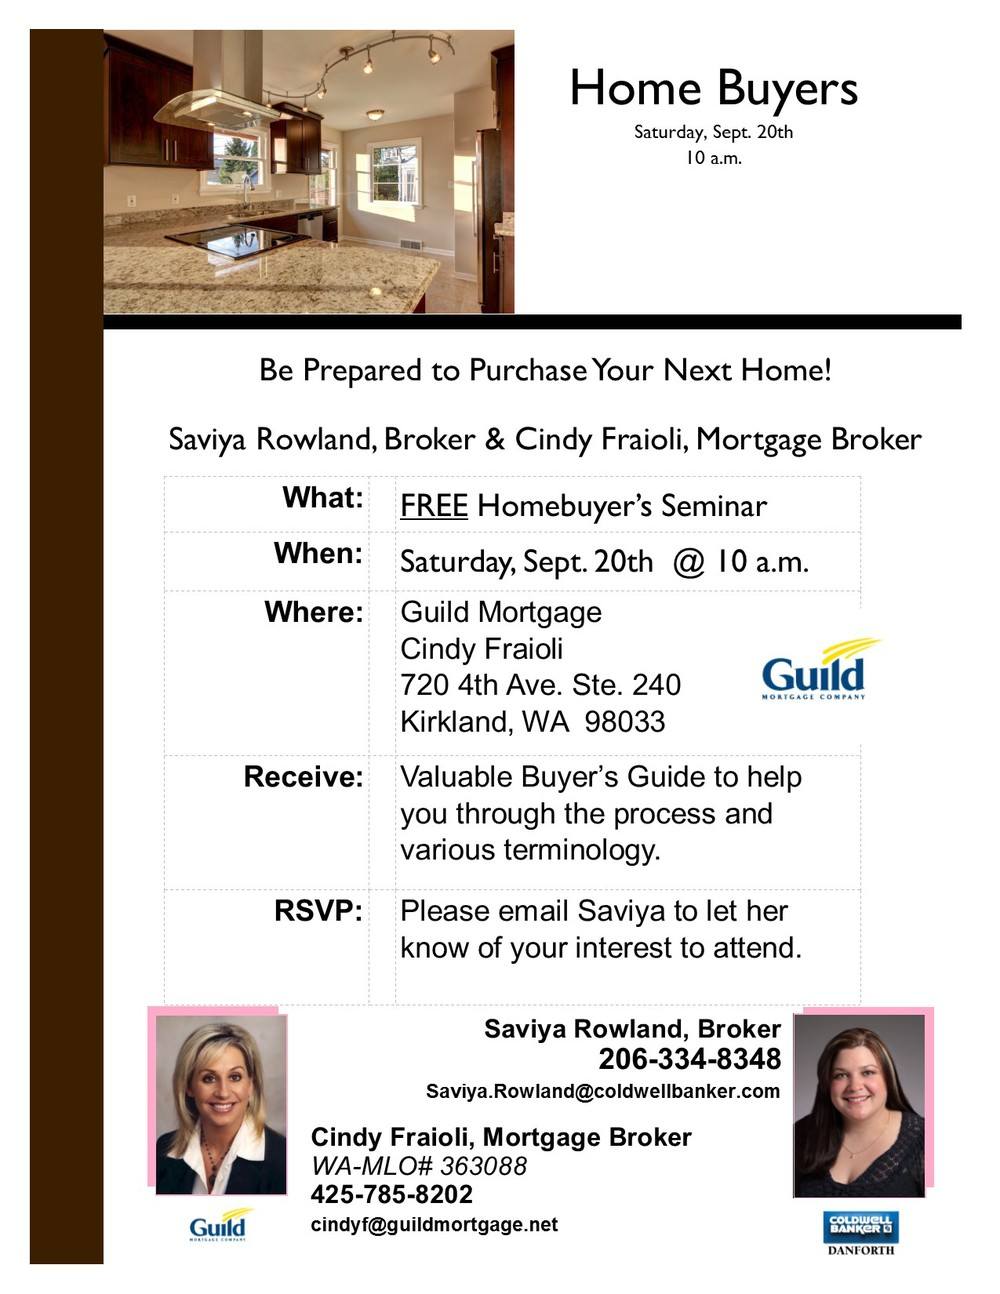 Saviya Home Buyer Invite Flyer GUILD 9-20-14.jpg